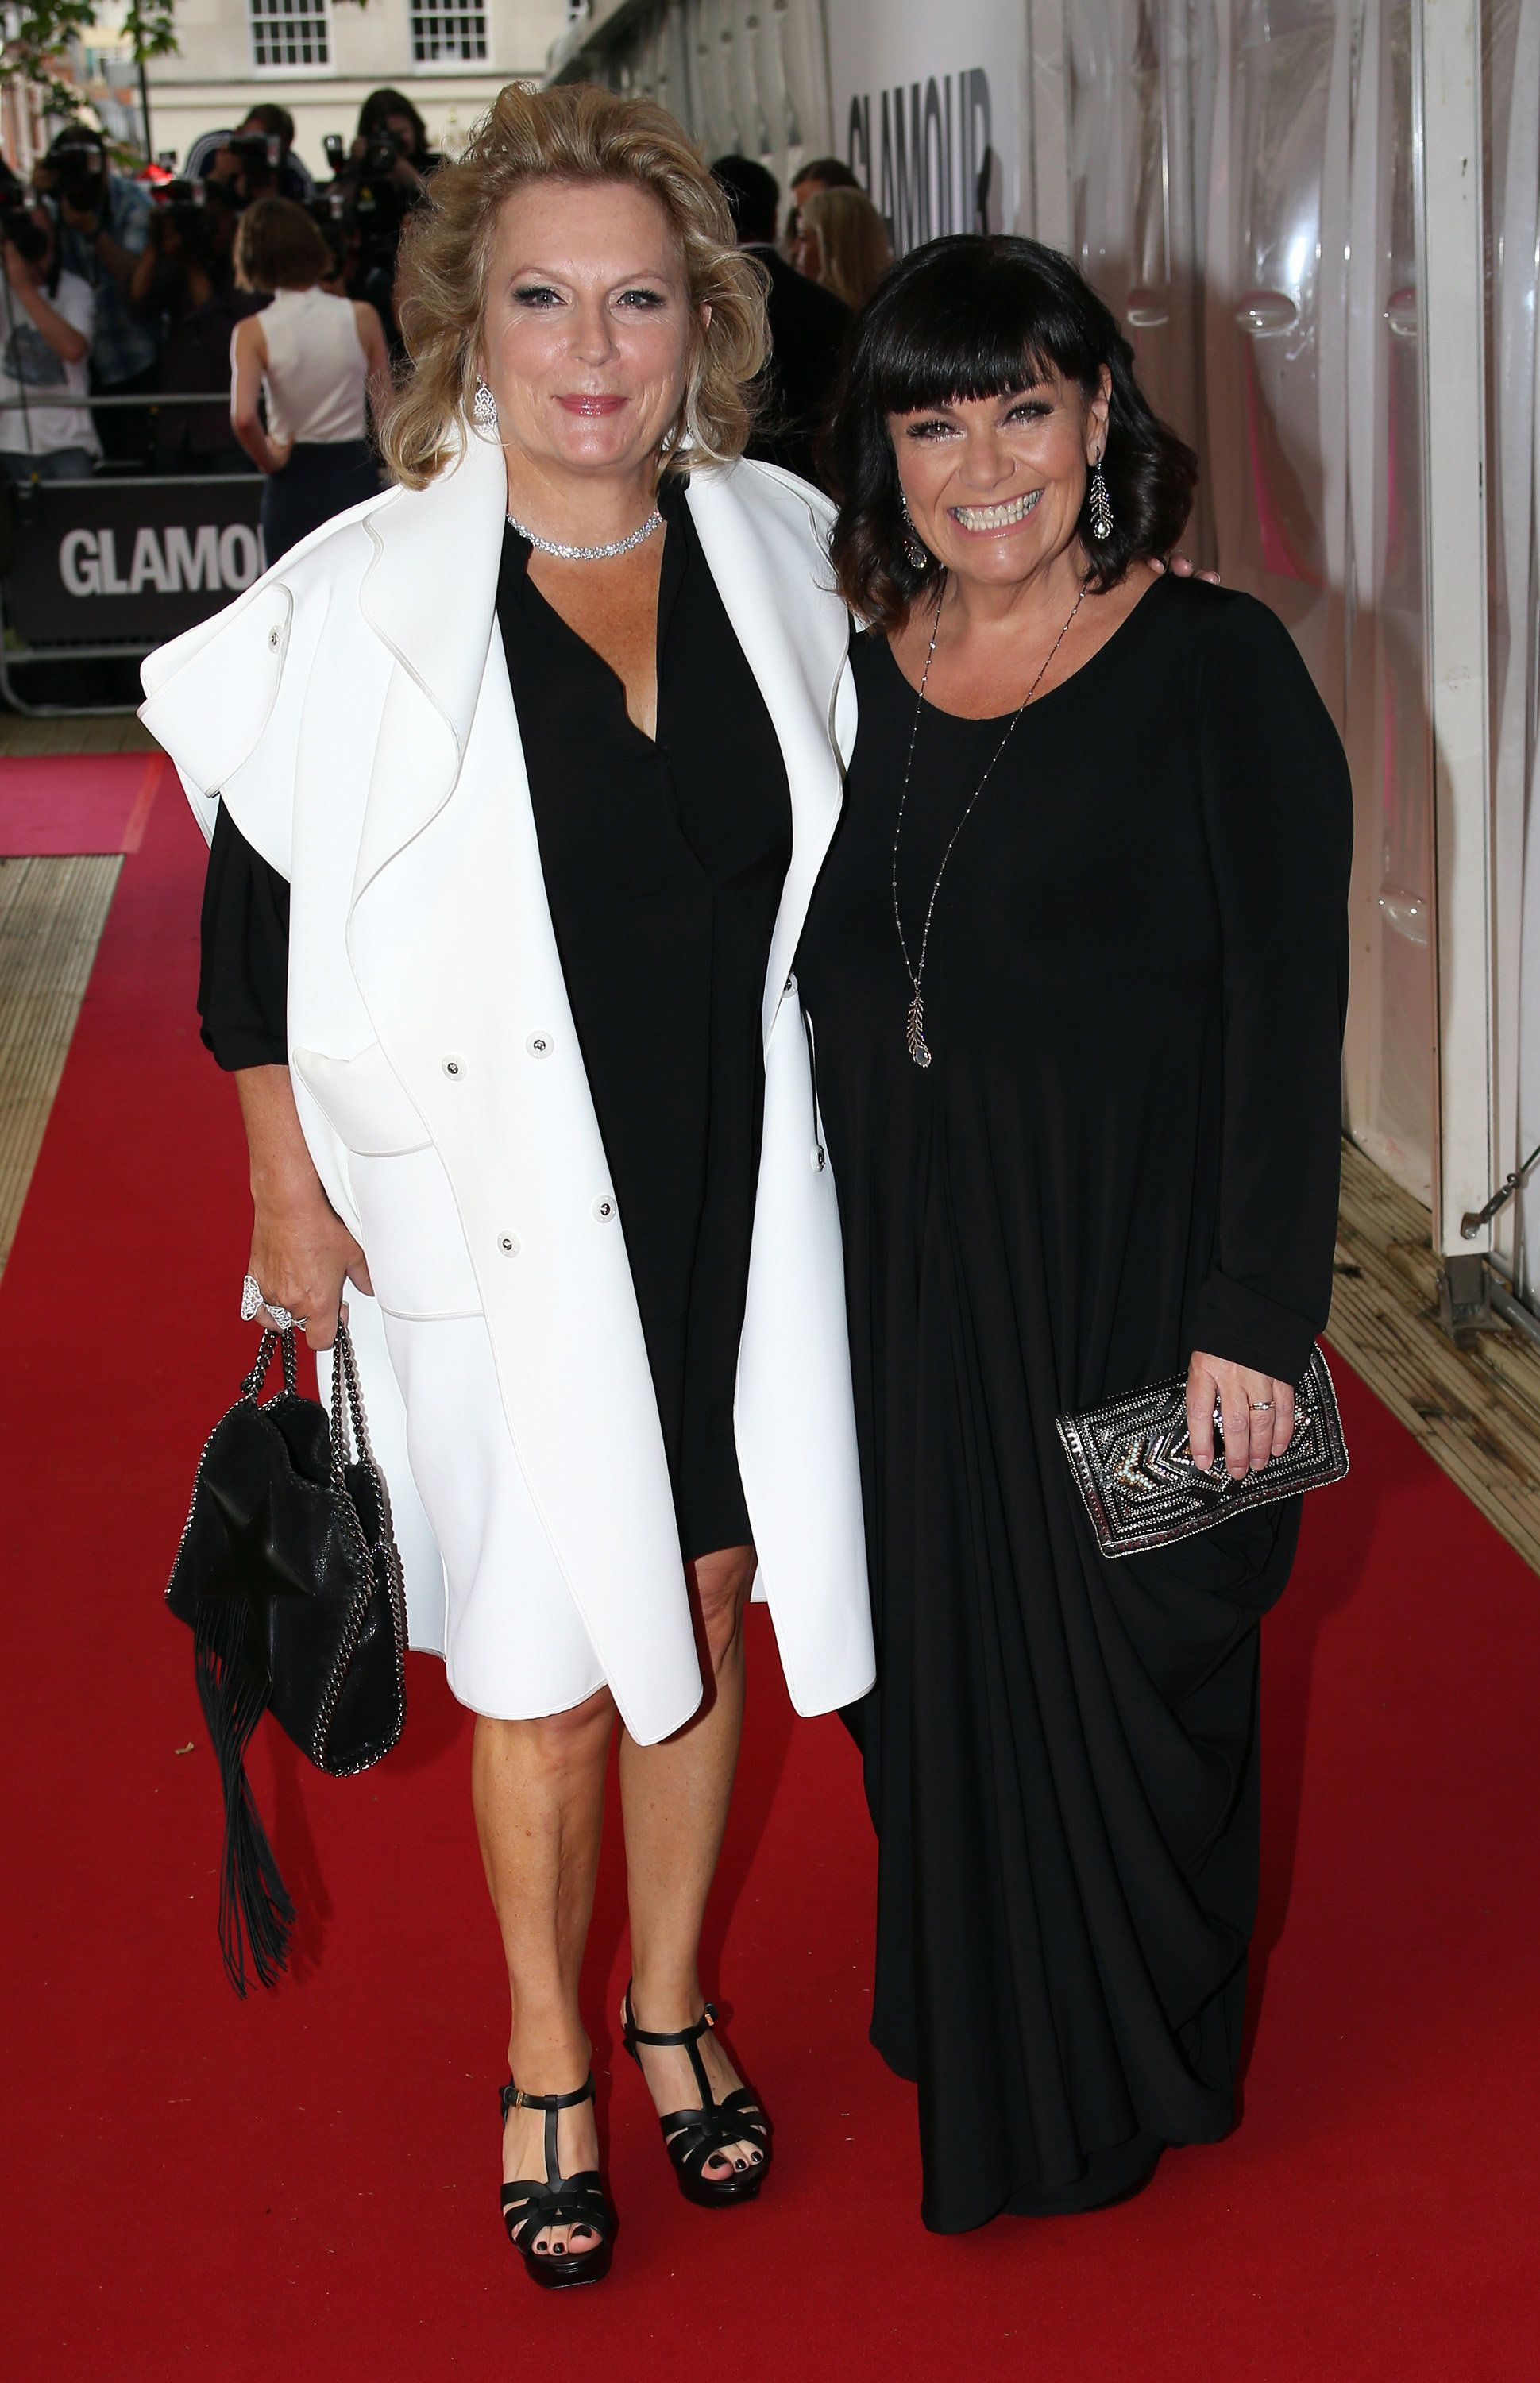 French And Saunders 'Turned Down Seven-Figure Sum' To Present 'Great British Bake